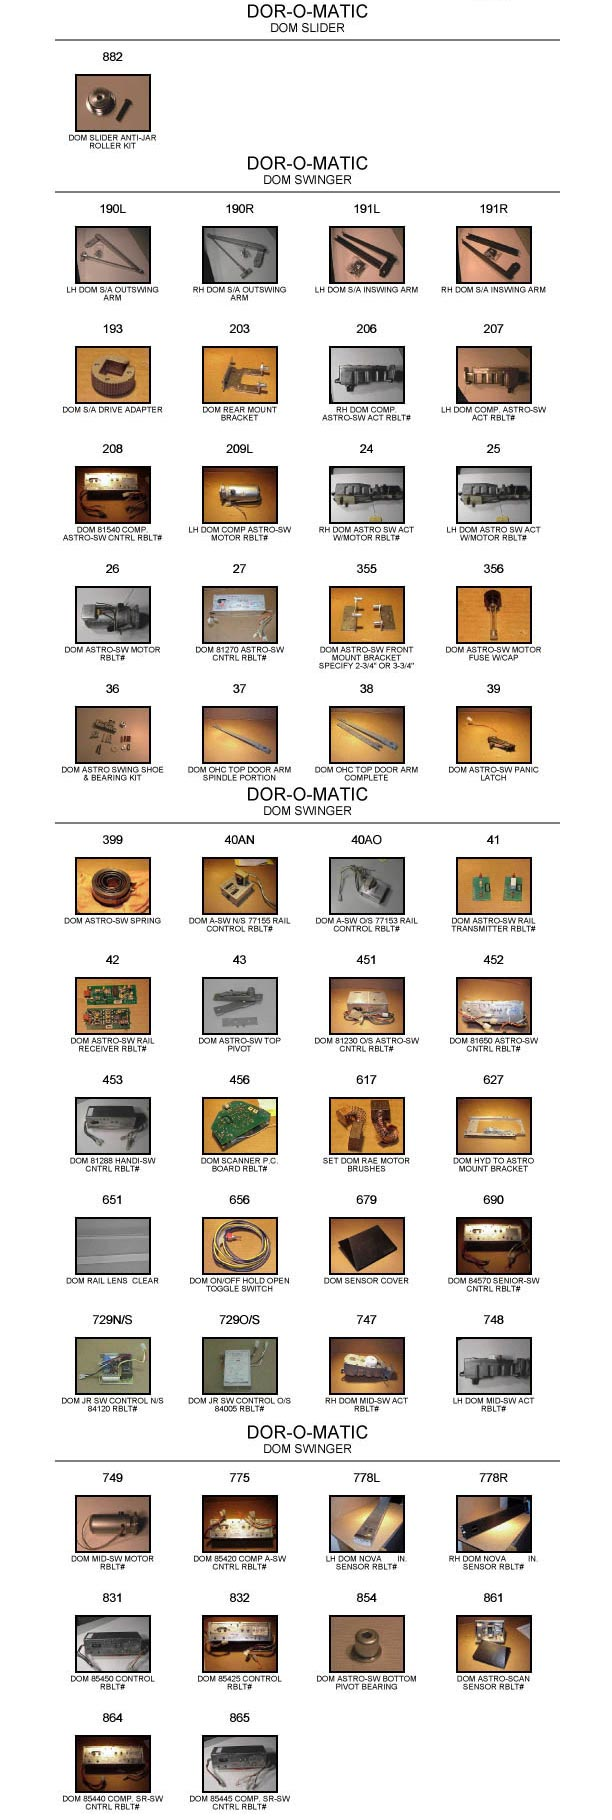 Gyrotech Replacement Door Parts Catalog 3